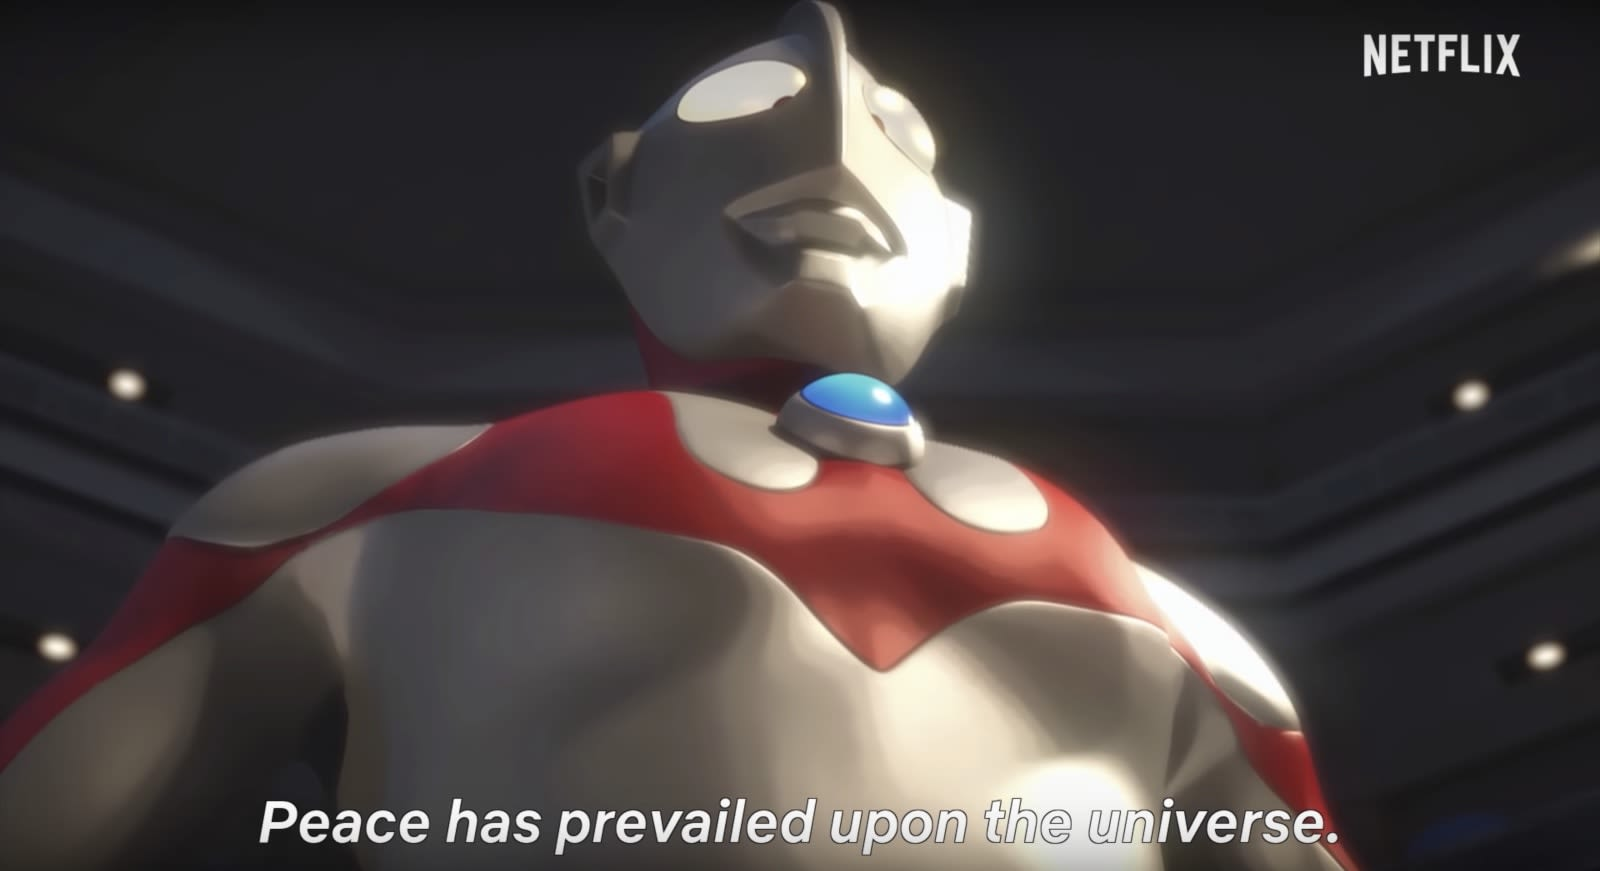 Netflix shows off its ultraman cg anime series in new trailer